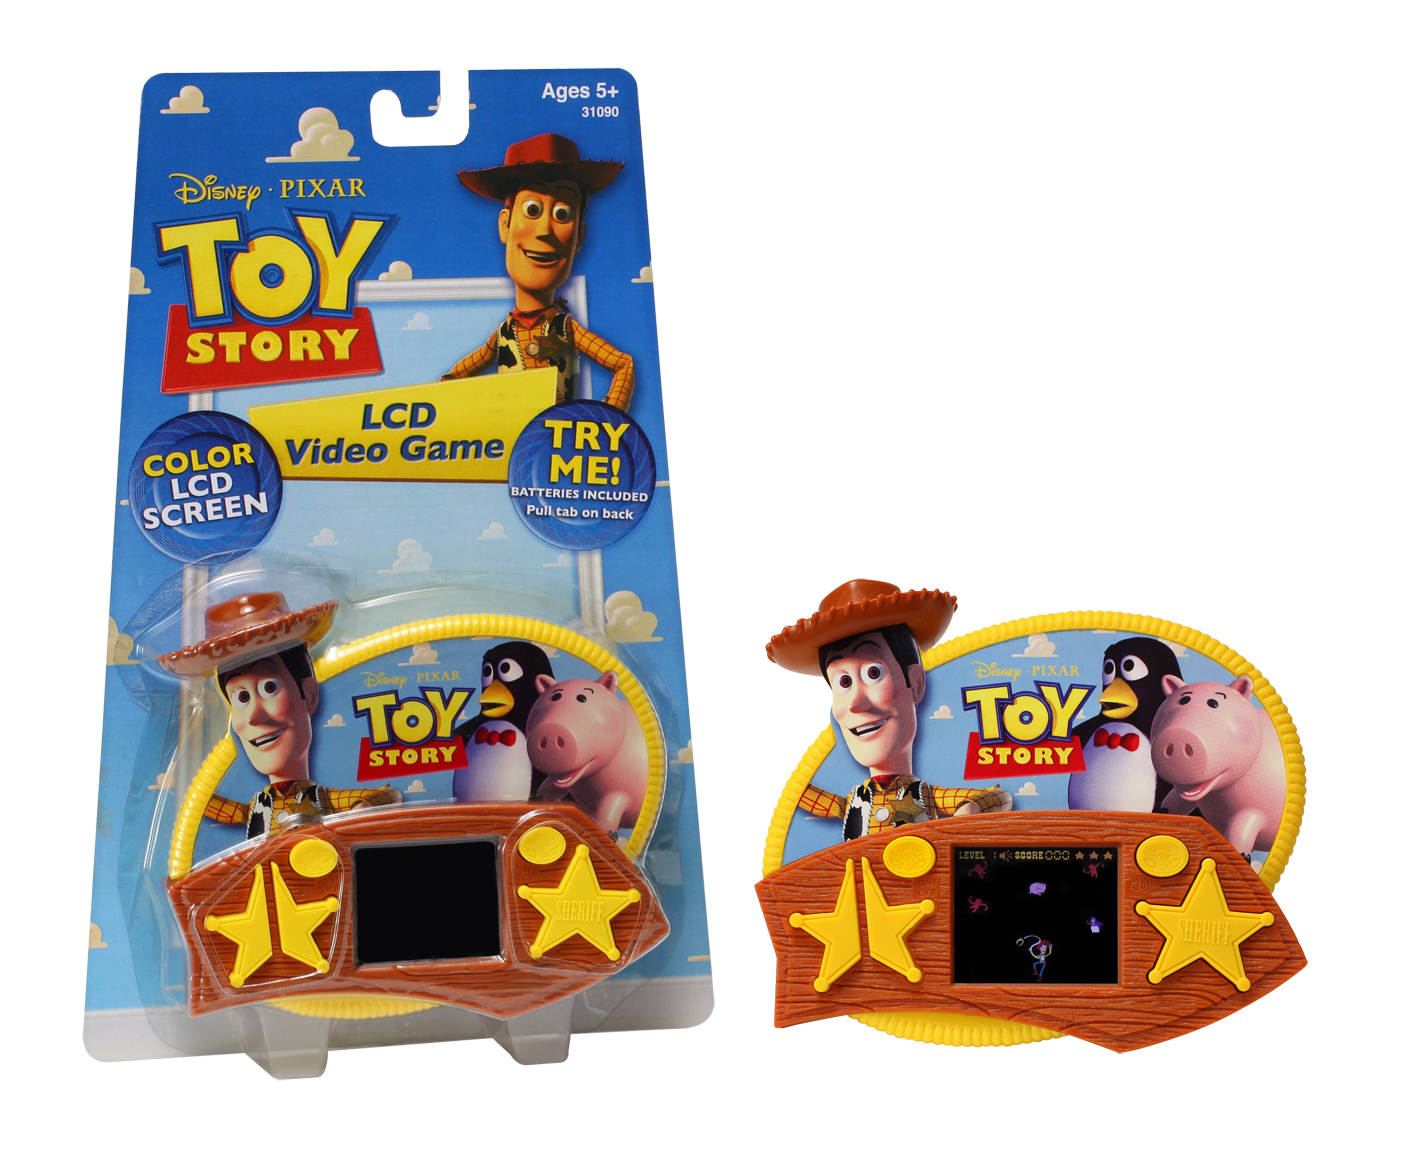 Woody Toy Story Games : Toy story woody lcd game review compare prices buy online